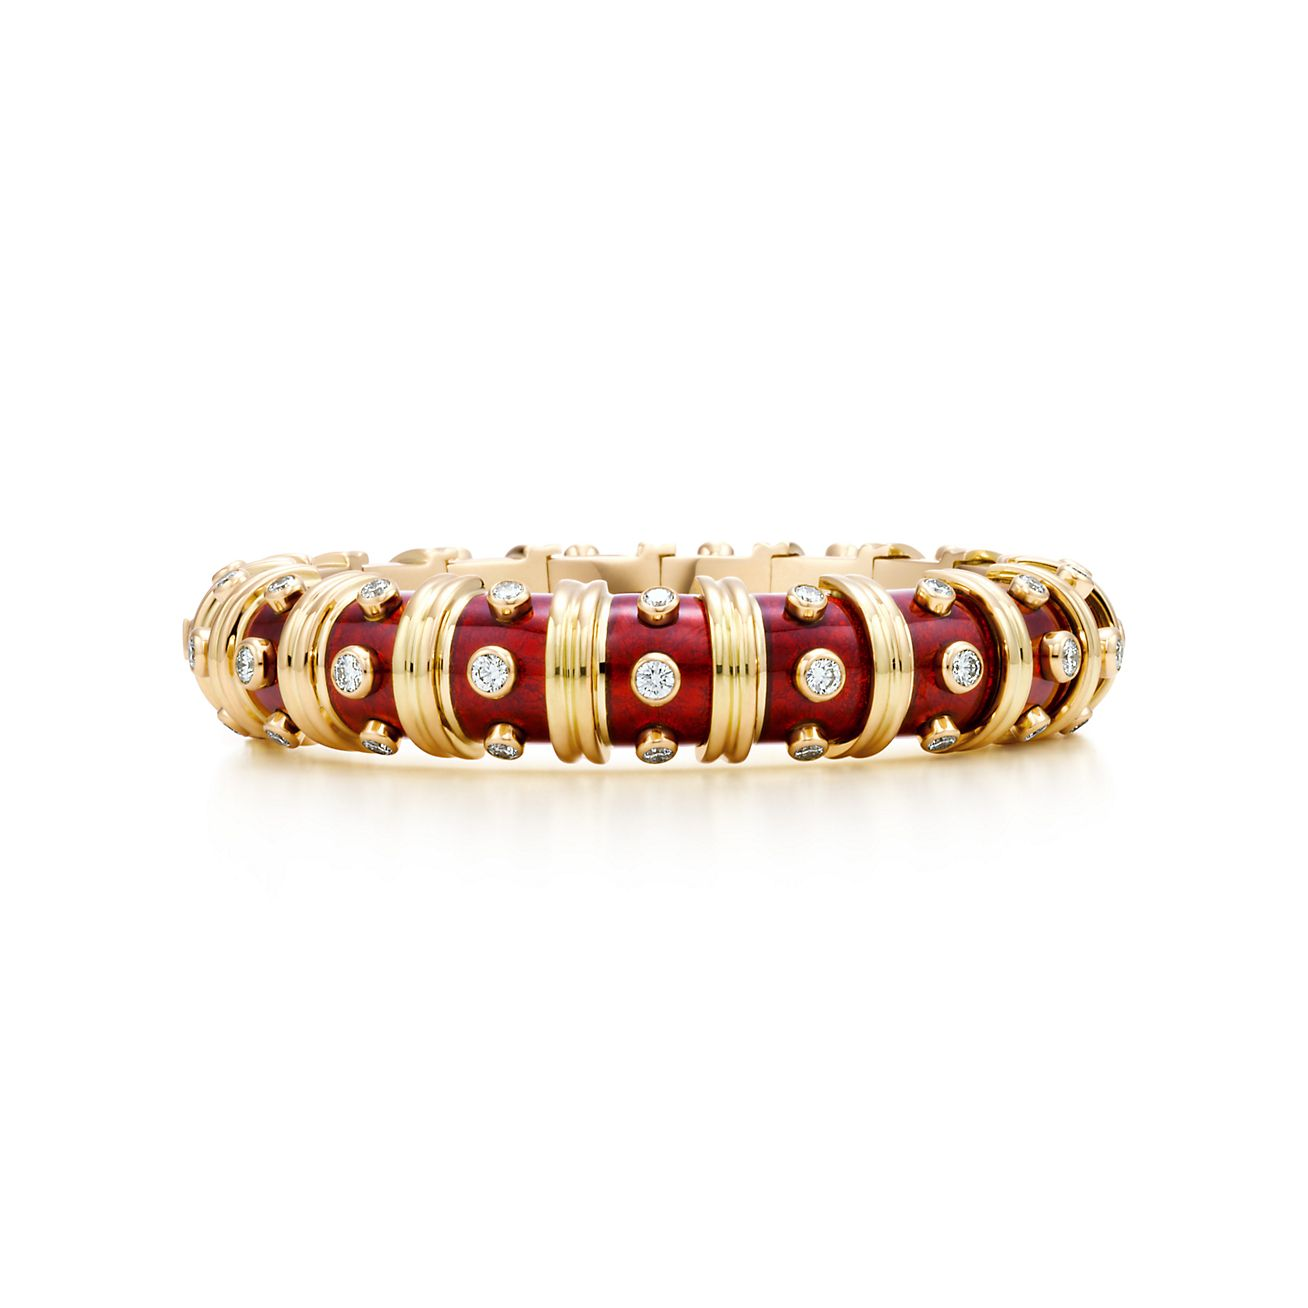 Narrow Bracelet in 18k gold with red enamel and round brilliant diamonds.